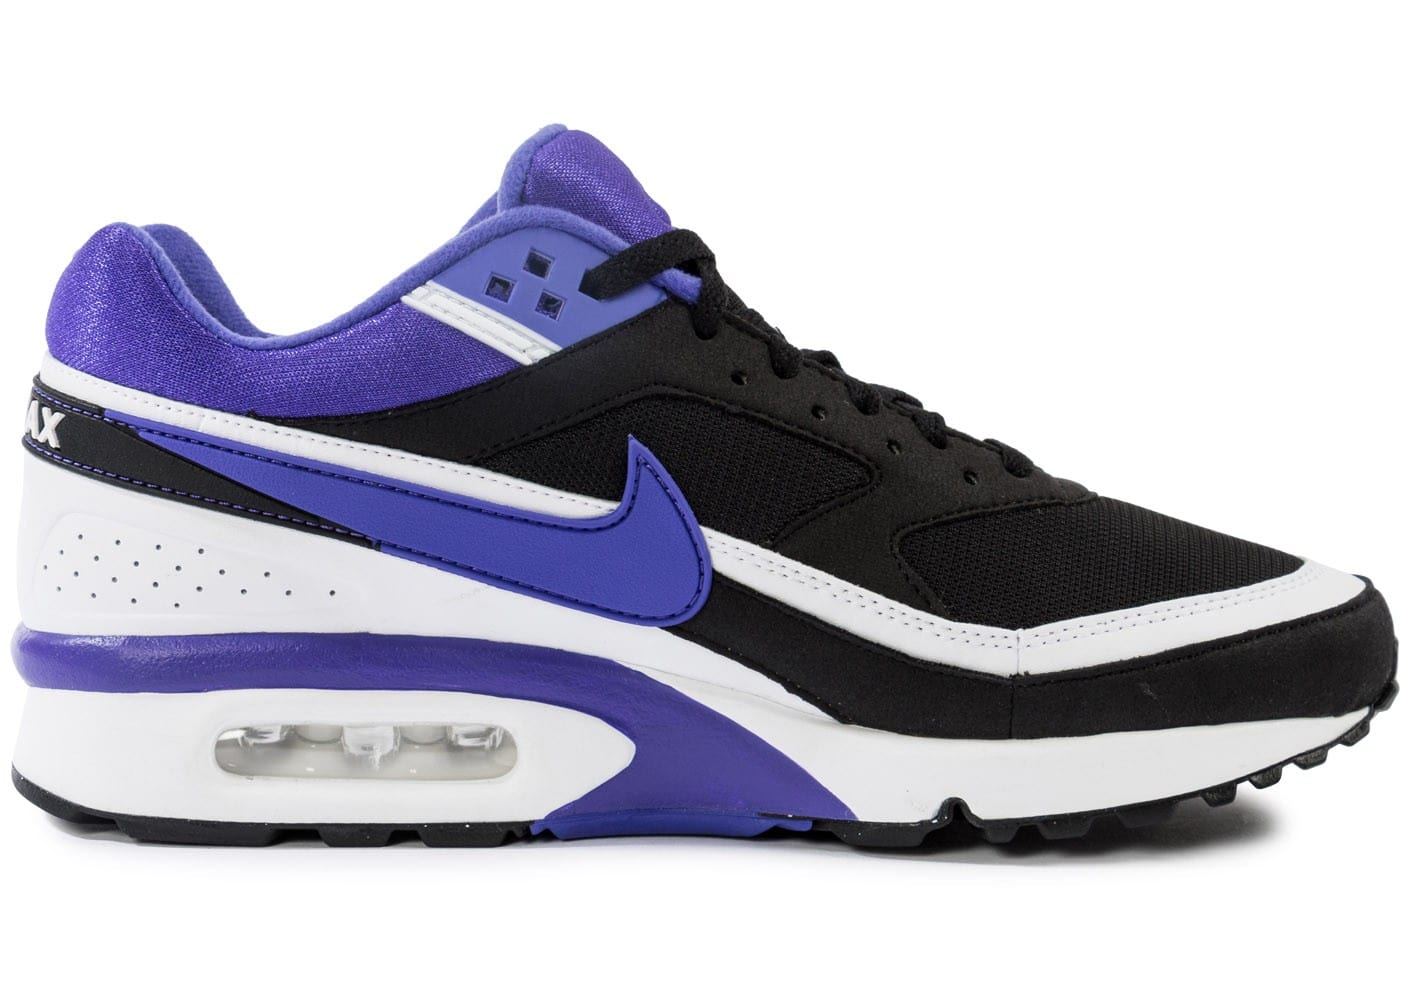 Nike Air Max BW OG Persian Violet Chaussures Baskets homme